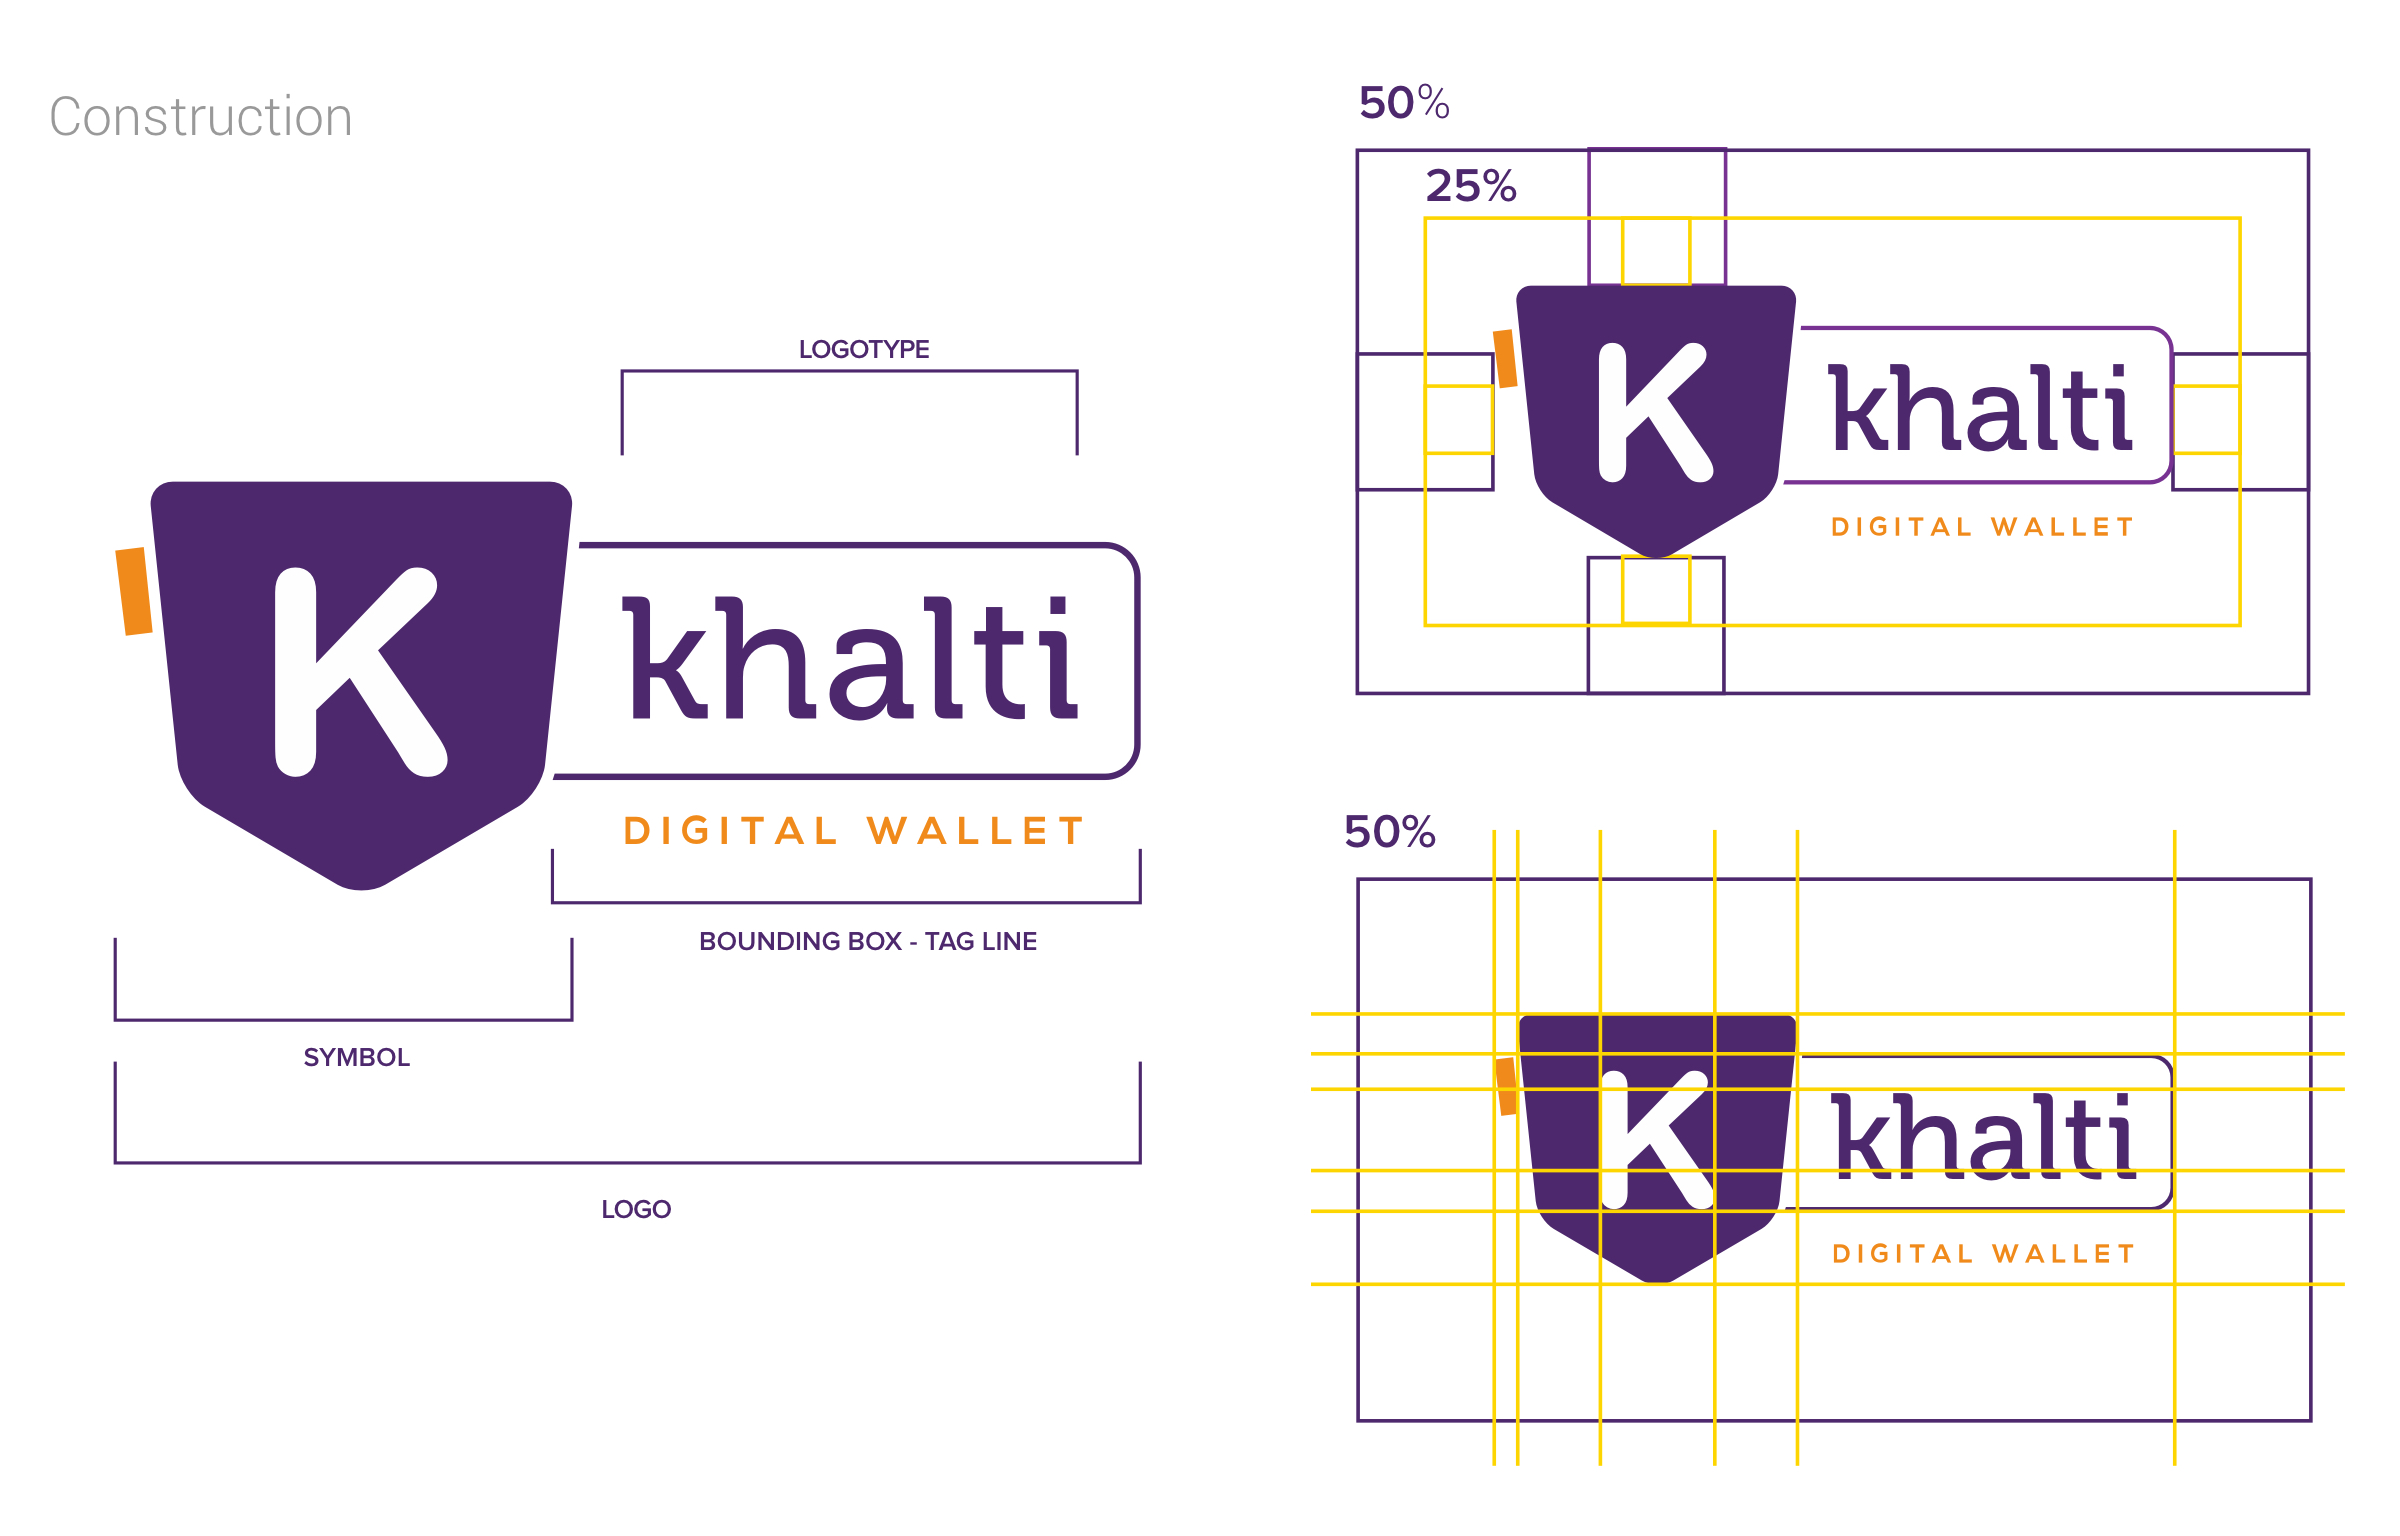 Khalti Logo Construction